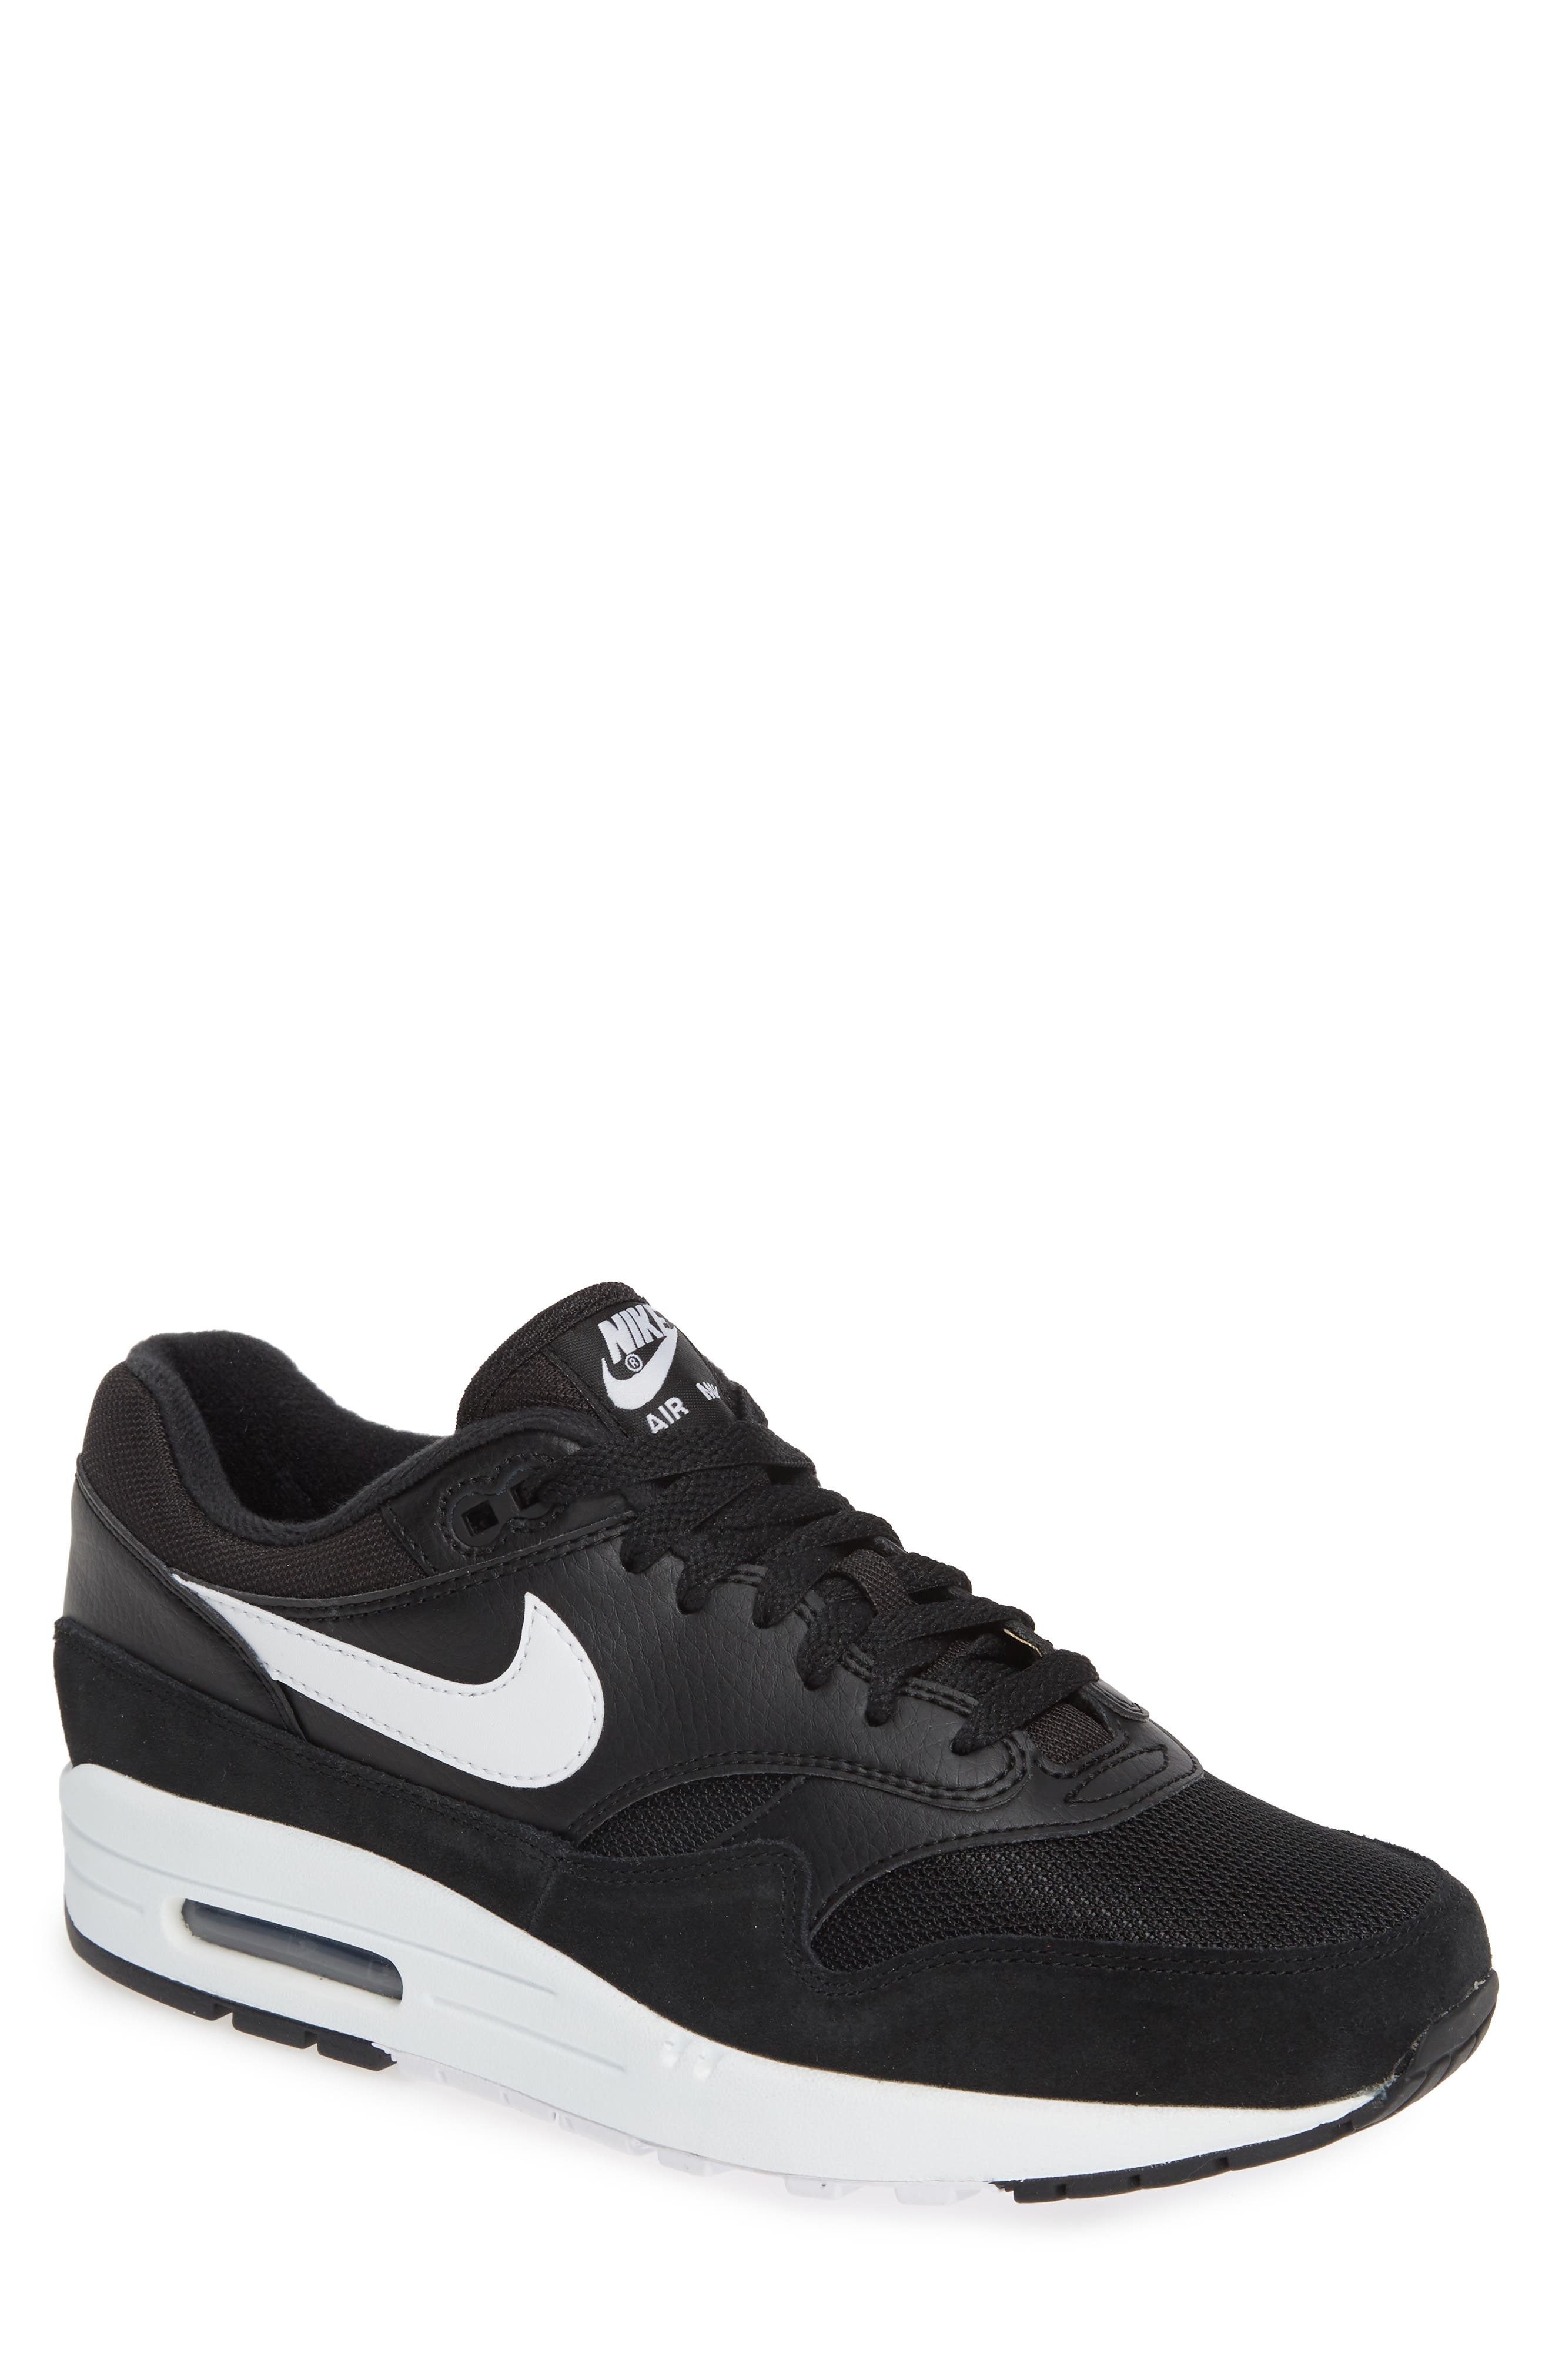 588c6cfea8d5 Nike Men s Shoes and Sneakers